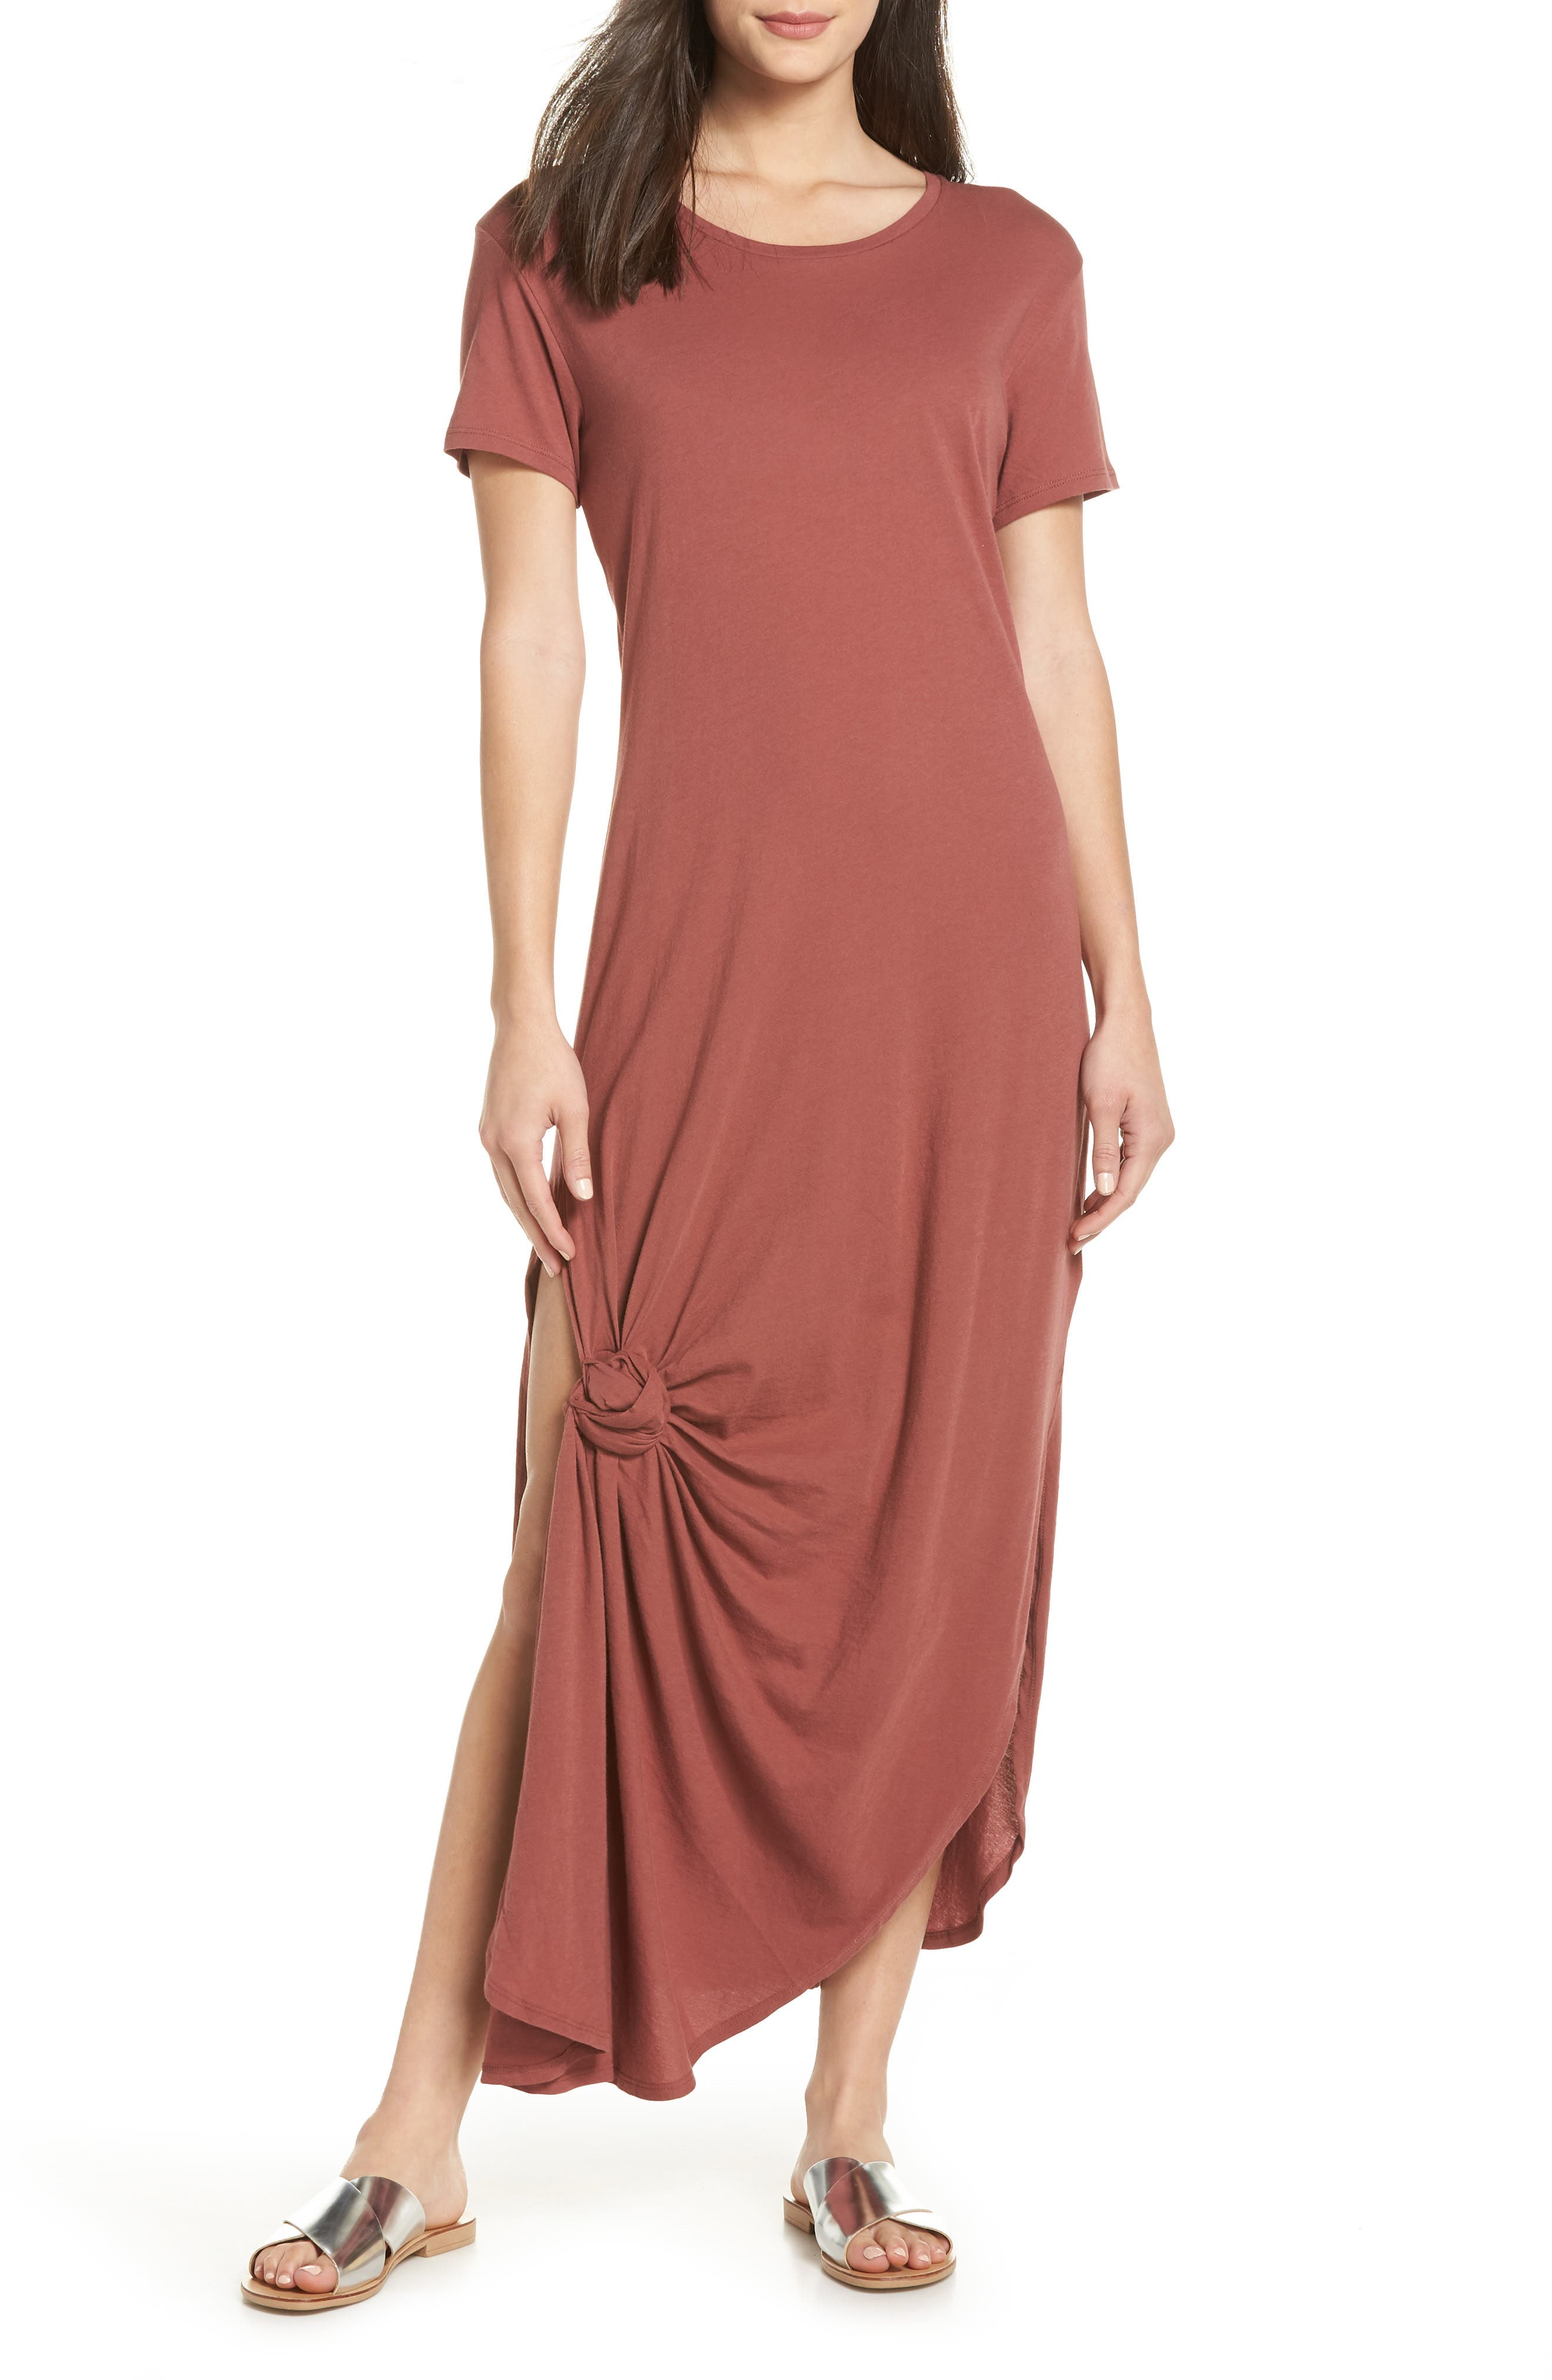 TAVIK Jones Cover-Up Dress, Main, color, 930